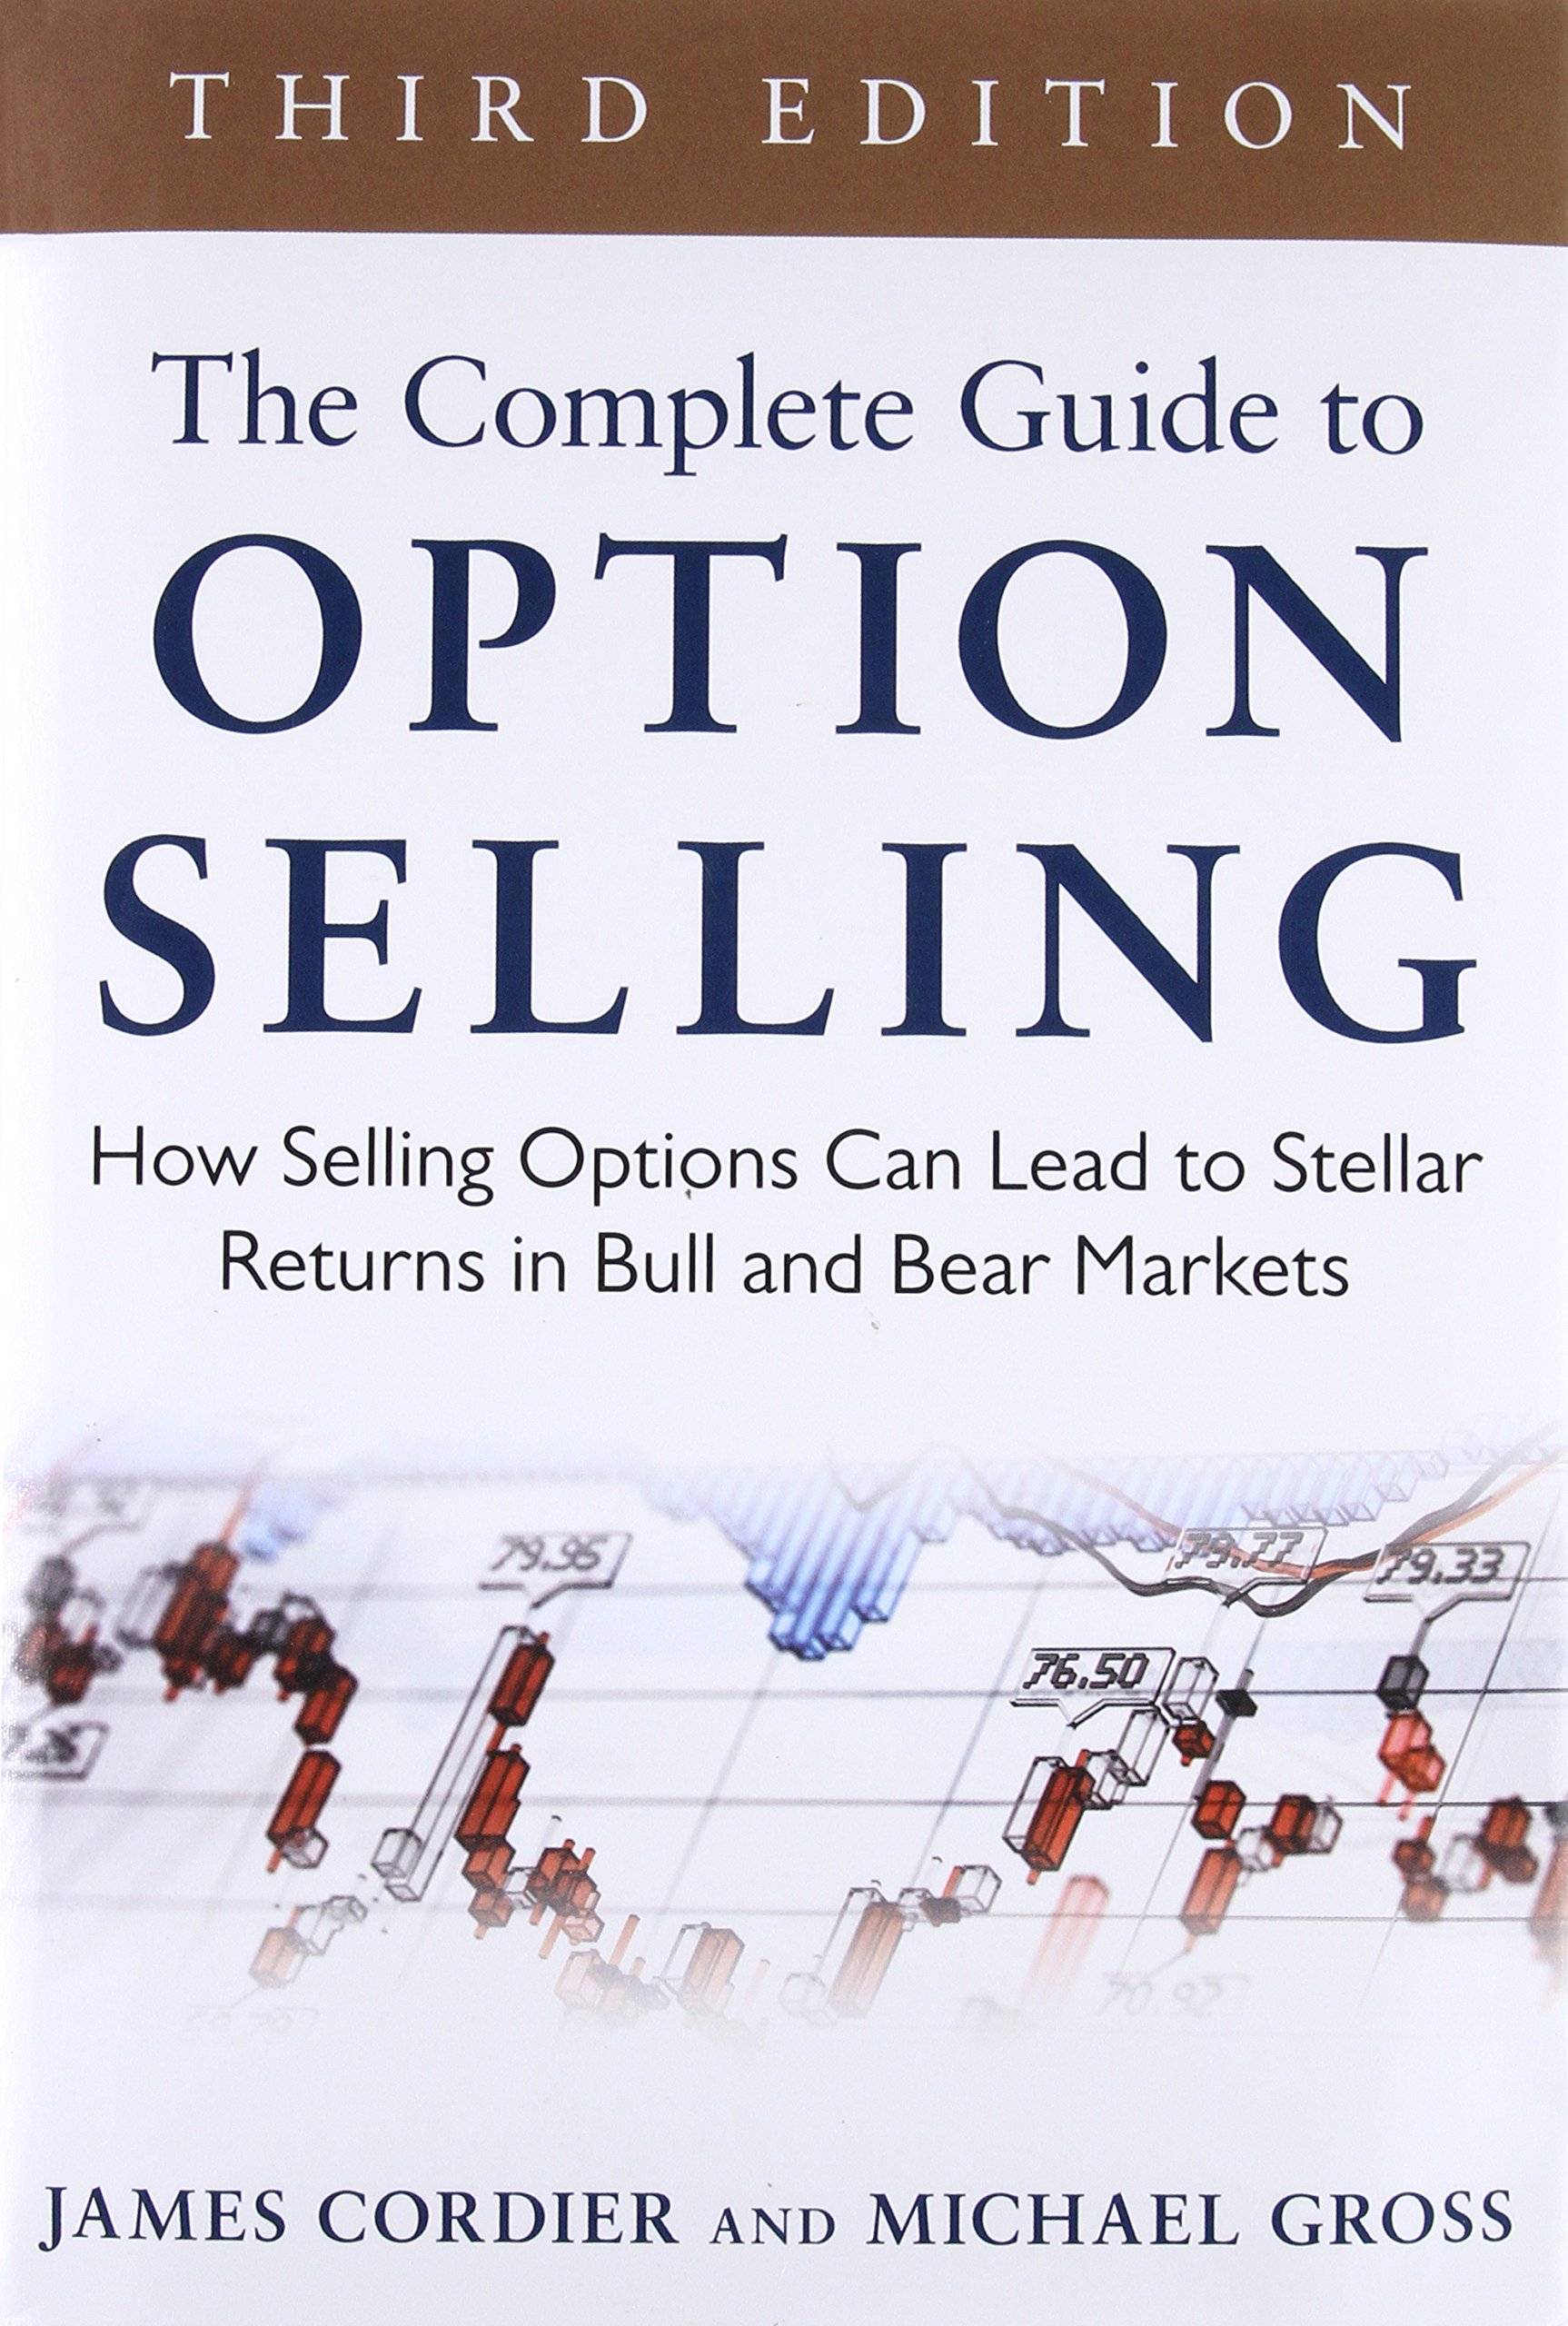 The Complete Guide to Option Selling: How Selling Options Can Lead to Stellar Returns in Bull and Bear Markets, 3rd Edition by imusti